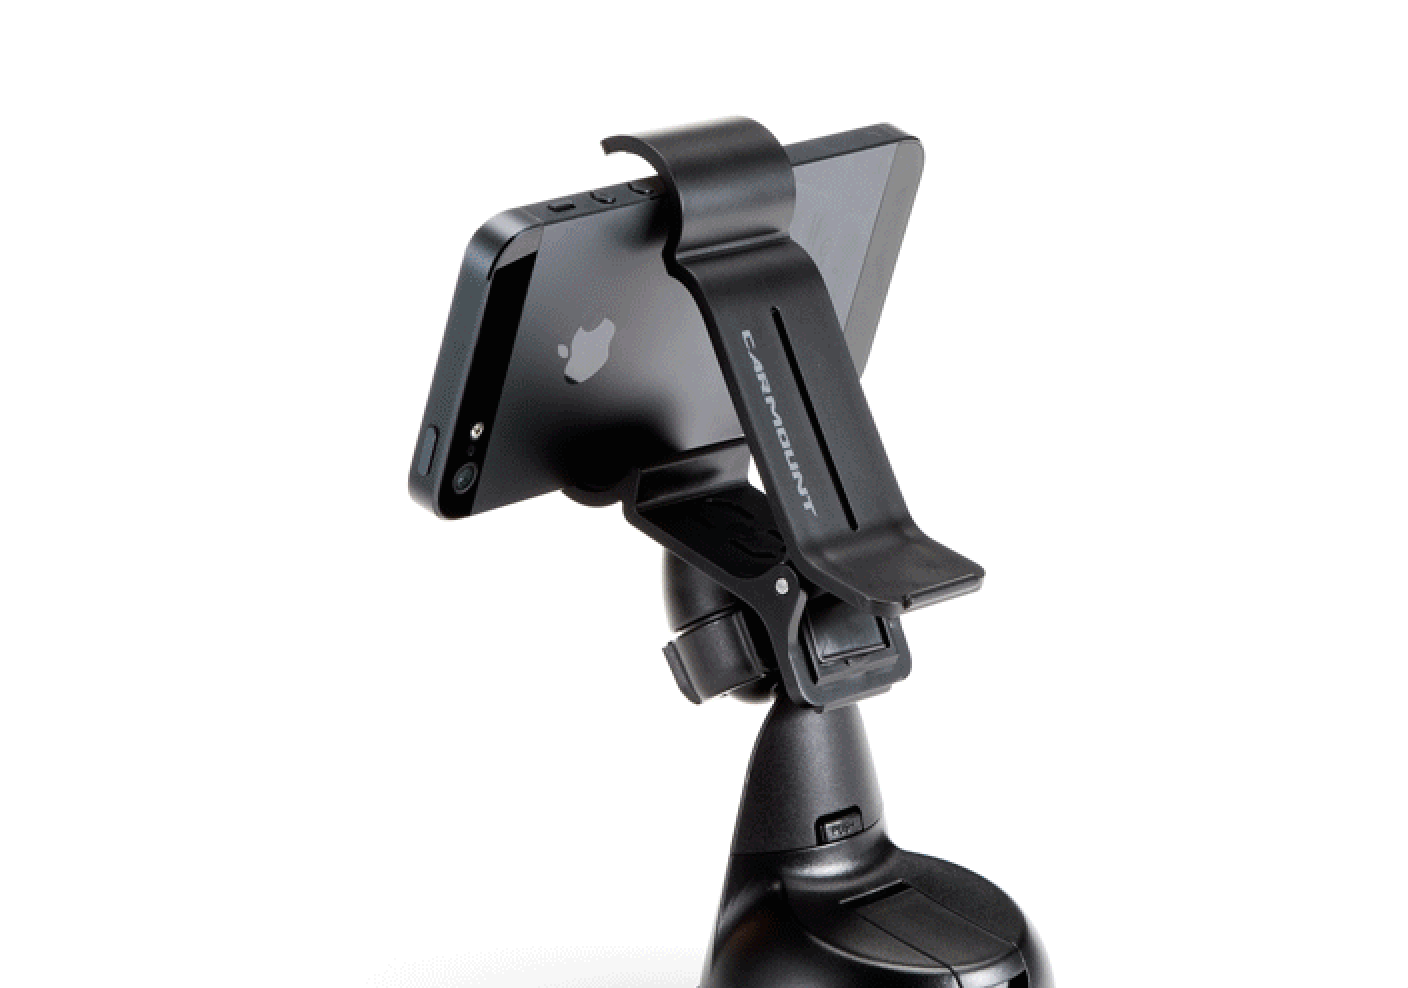 NEOGRAB Smartphone Holder Review